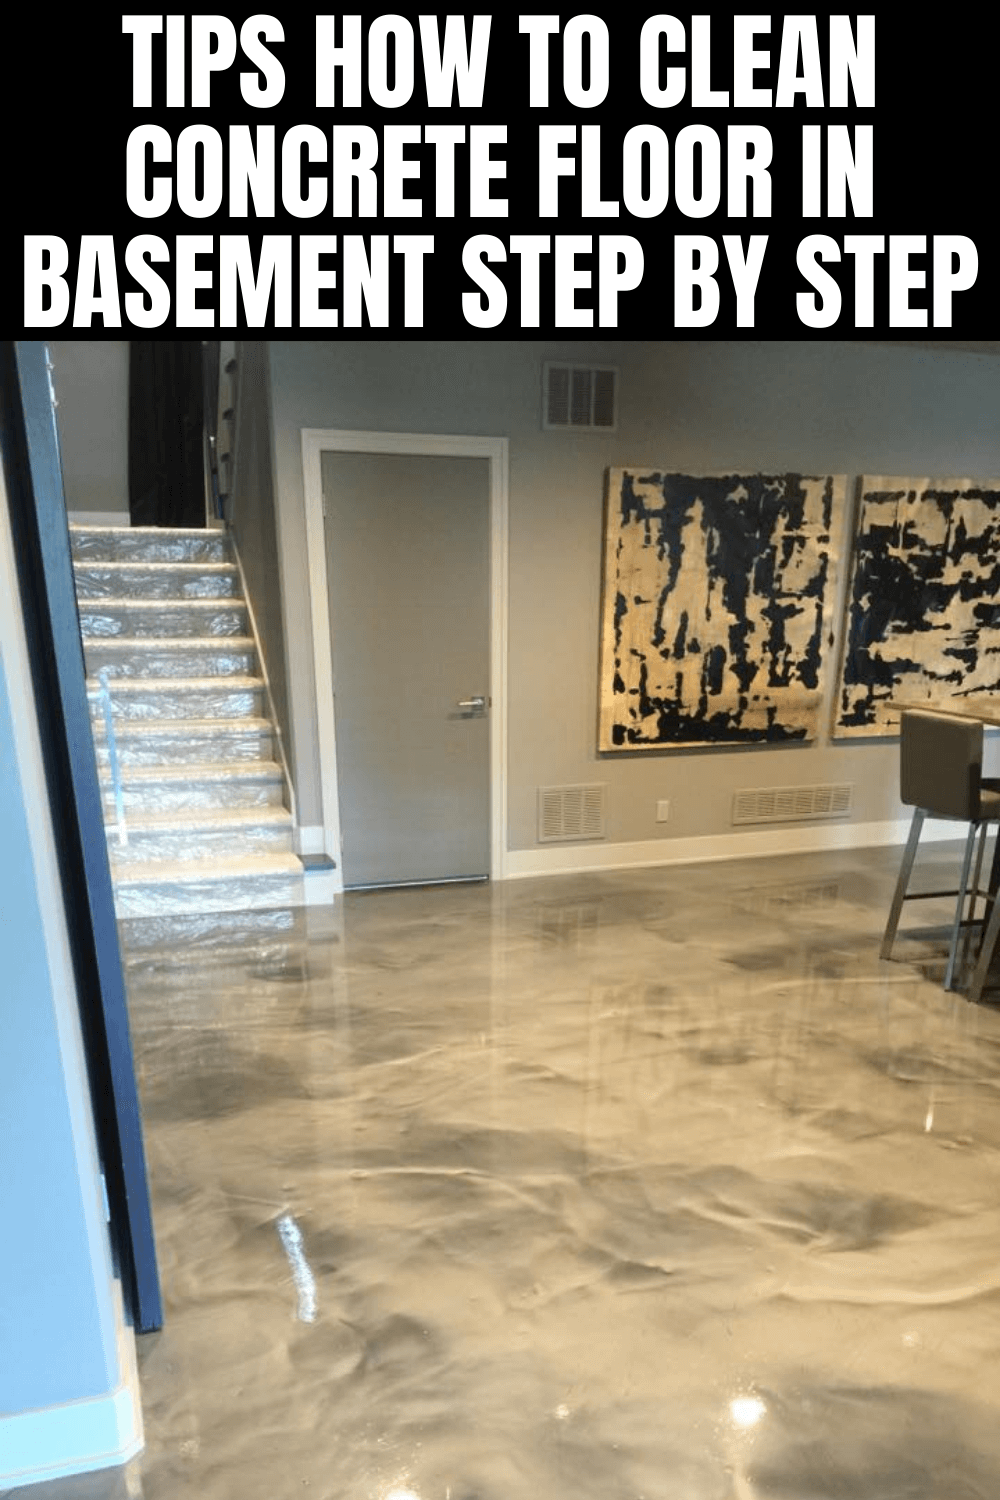 TIPS HOW TO CLEAN CONCRETE FLOOR IN BASEMENT STEP BY STEP